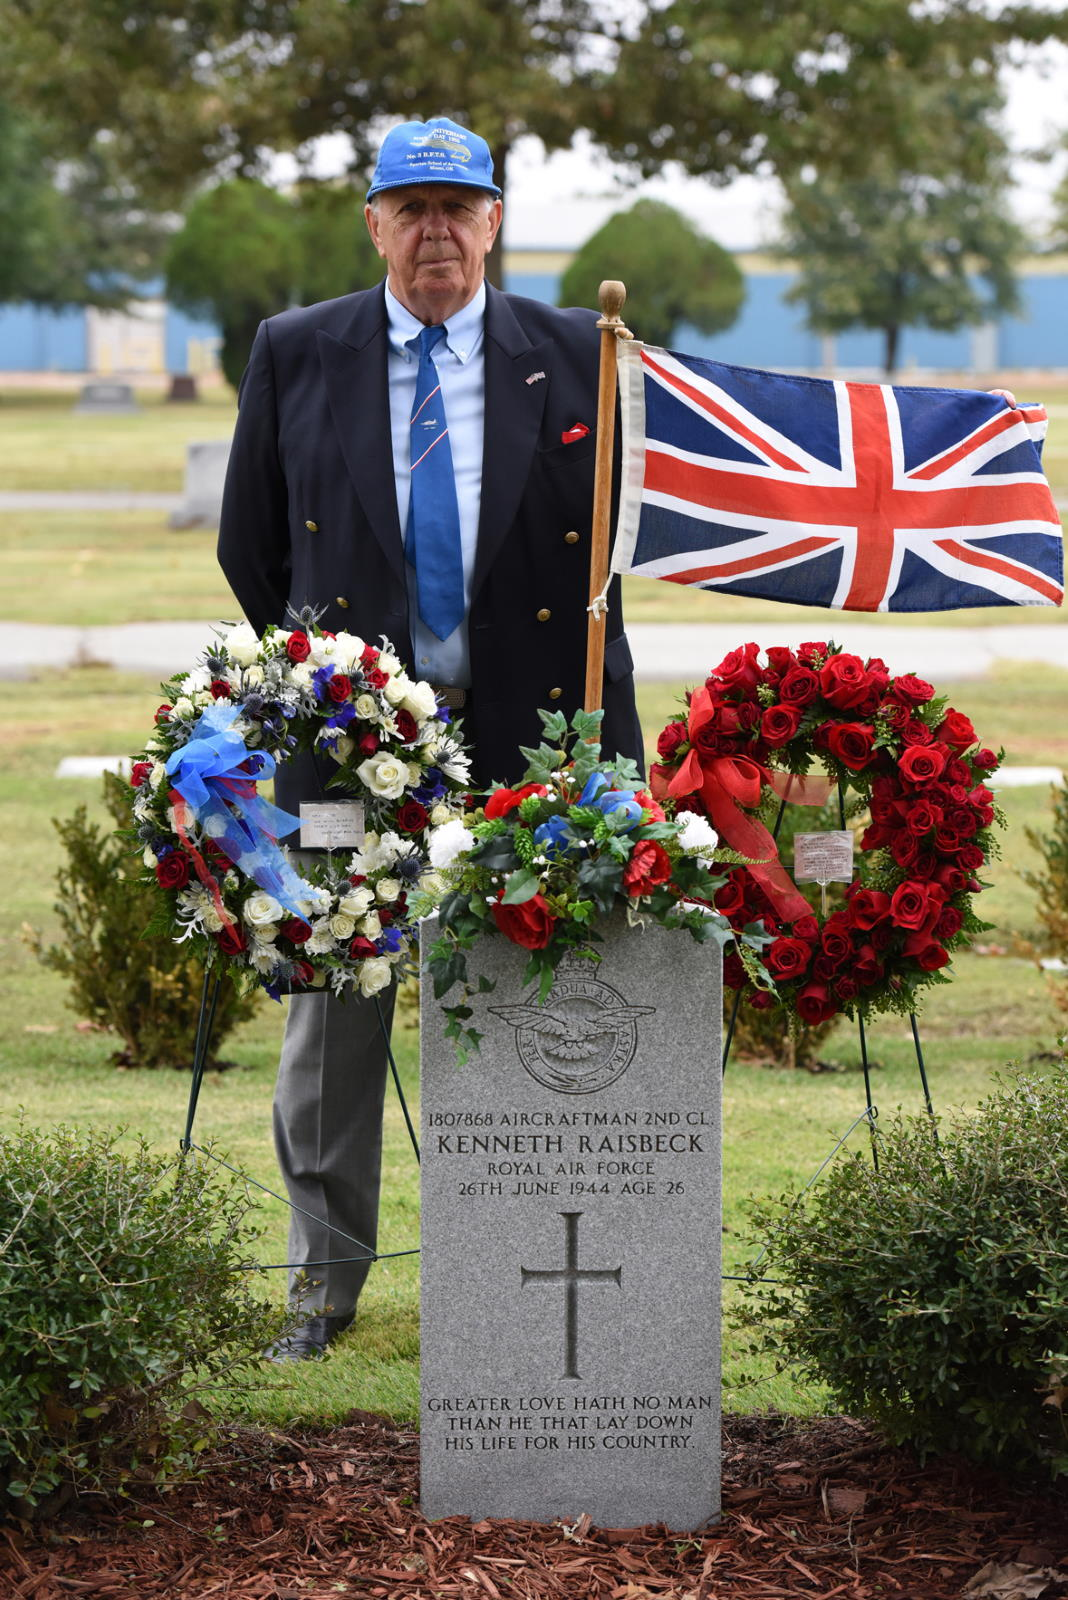 John Raisbeck son of British Cadet Kenneth Raisbeck standing next to his fathers grave marker with floral wreaths and flag of England